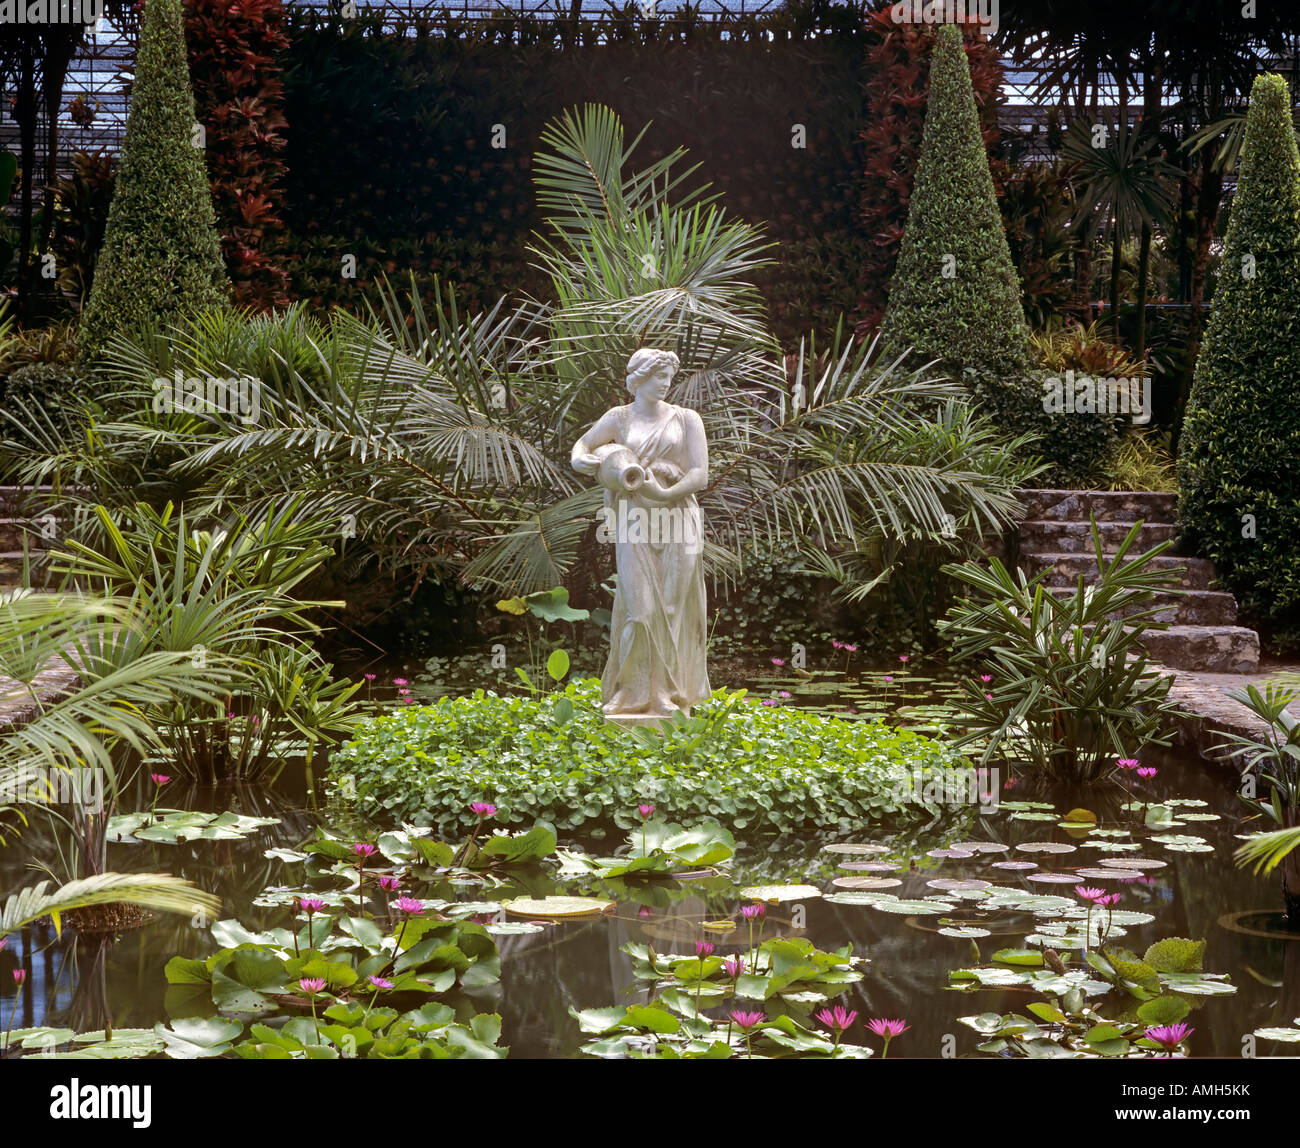 Rose Garden centre Bangkok Thailand Stock Photo: 15264822 - Alamy